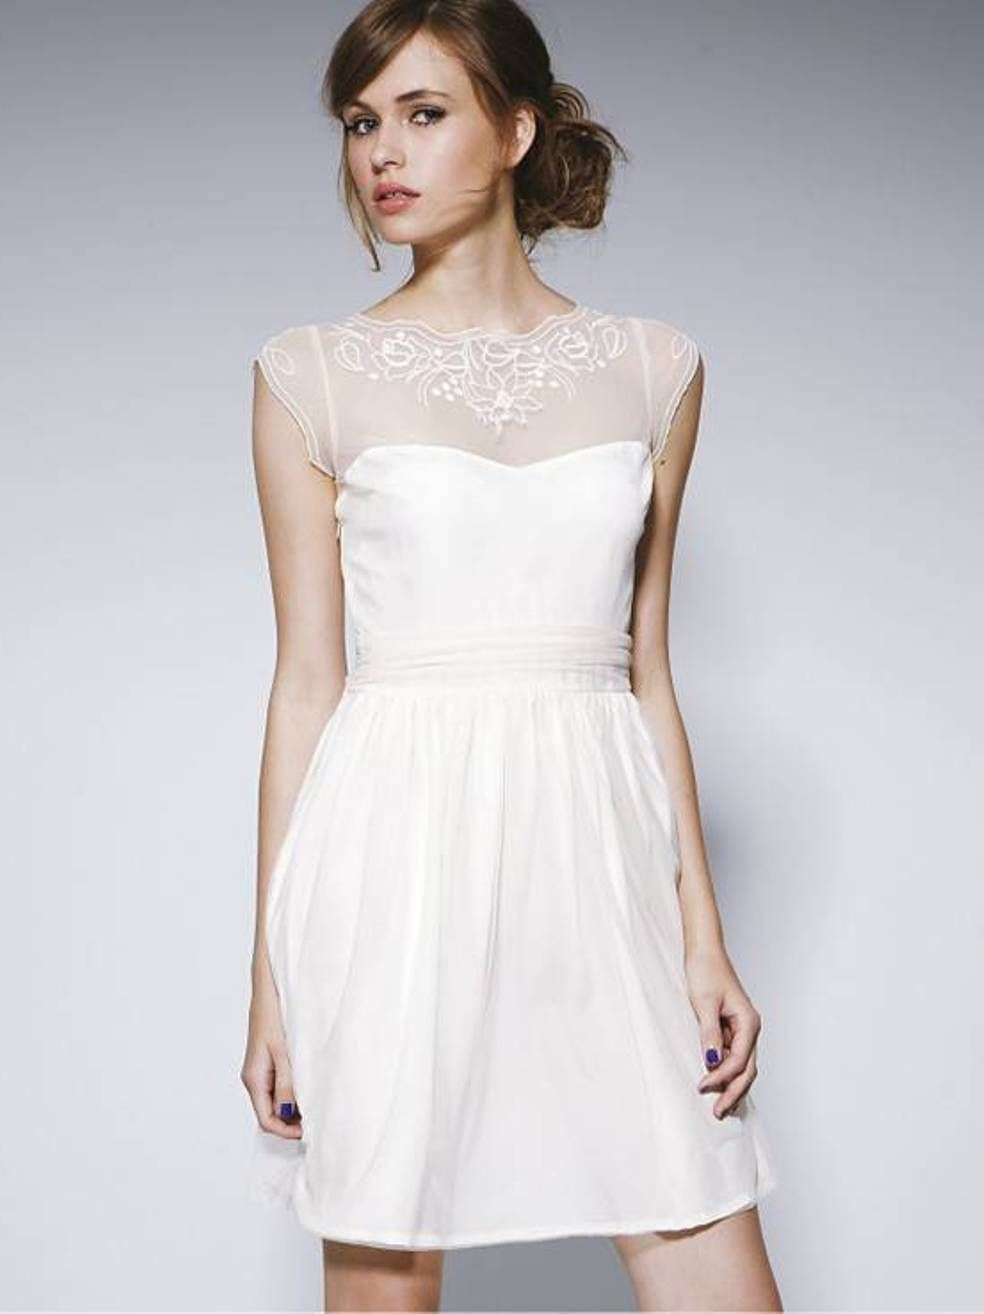 long white casual wedding dresses 48. casual beach wedding dresses ...